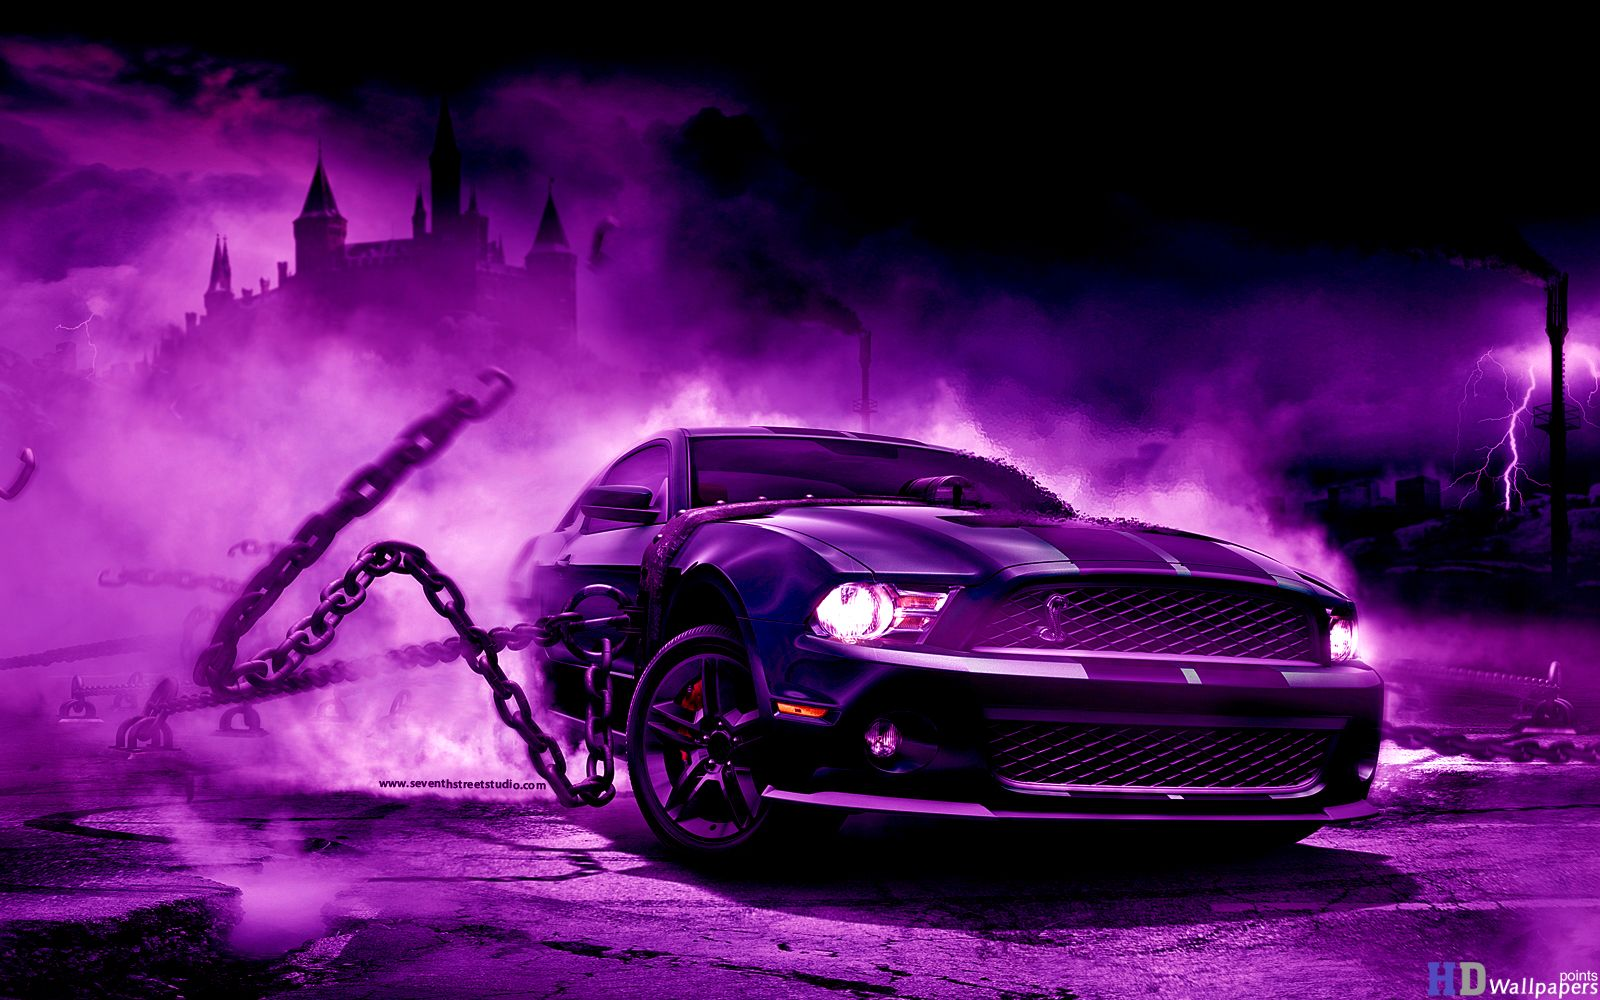 Cool 3d Wallpaper Backgrounds Cool Car 3d Wallpapers Wallpaper